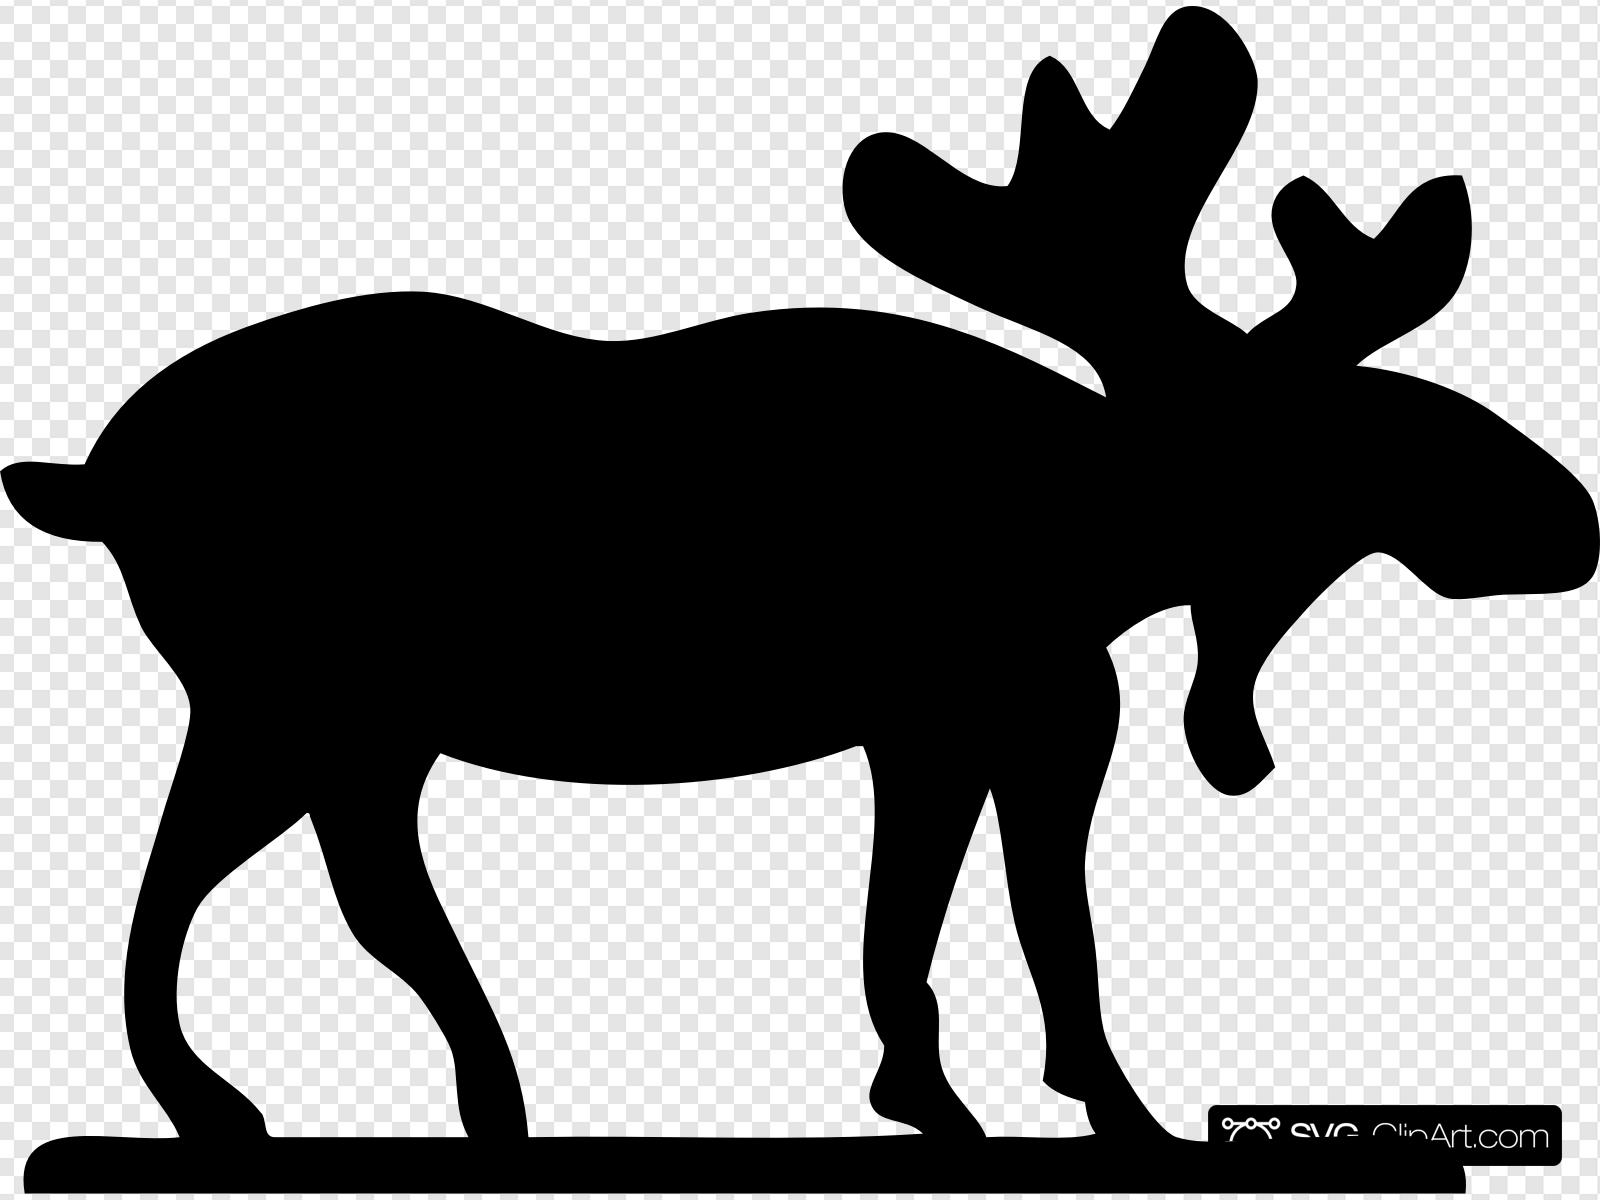 Moose outline clipart free stock Moose Sihouette Clip art, Icon and SVG - SVG Clipart free stock